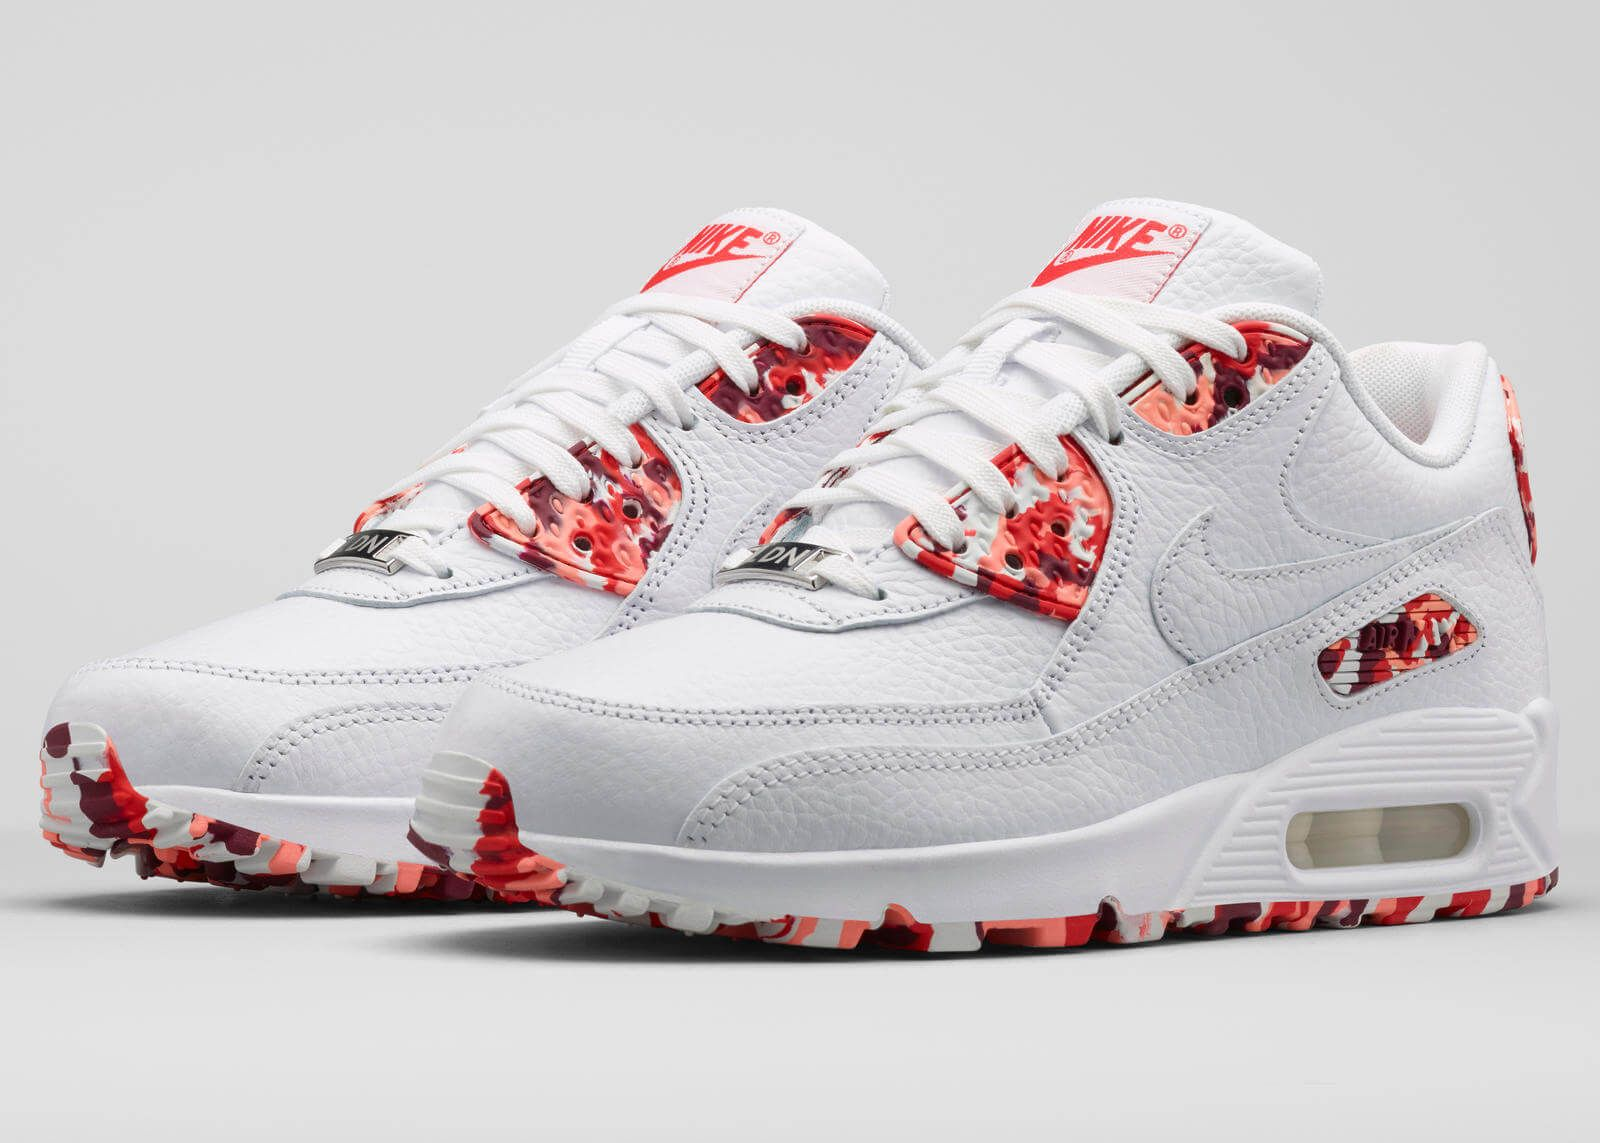 Air Max 90 – City Pack (Londres - Eton Mess) #fridom #nike